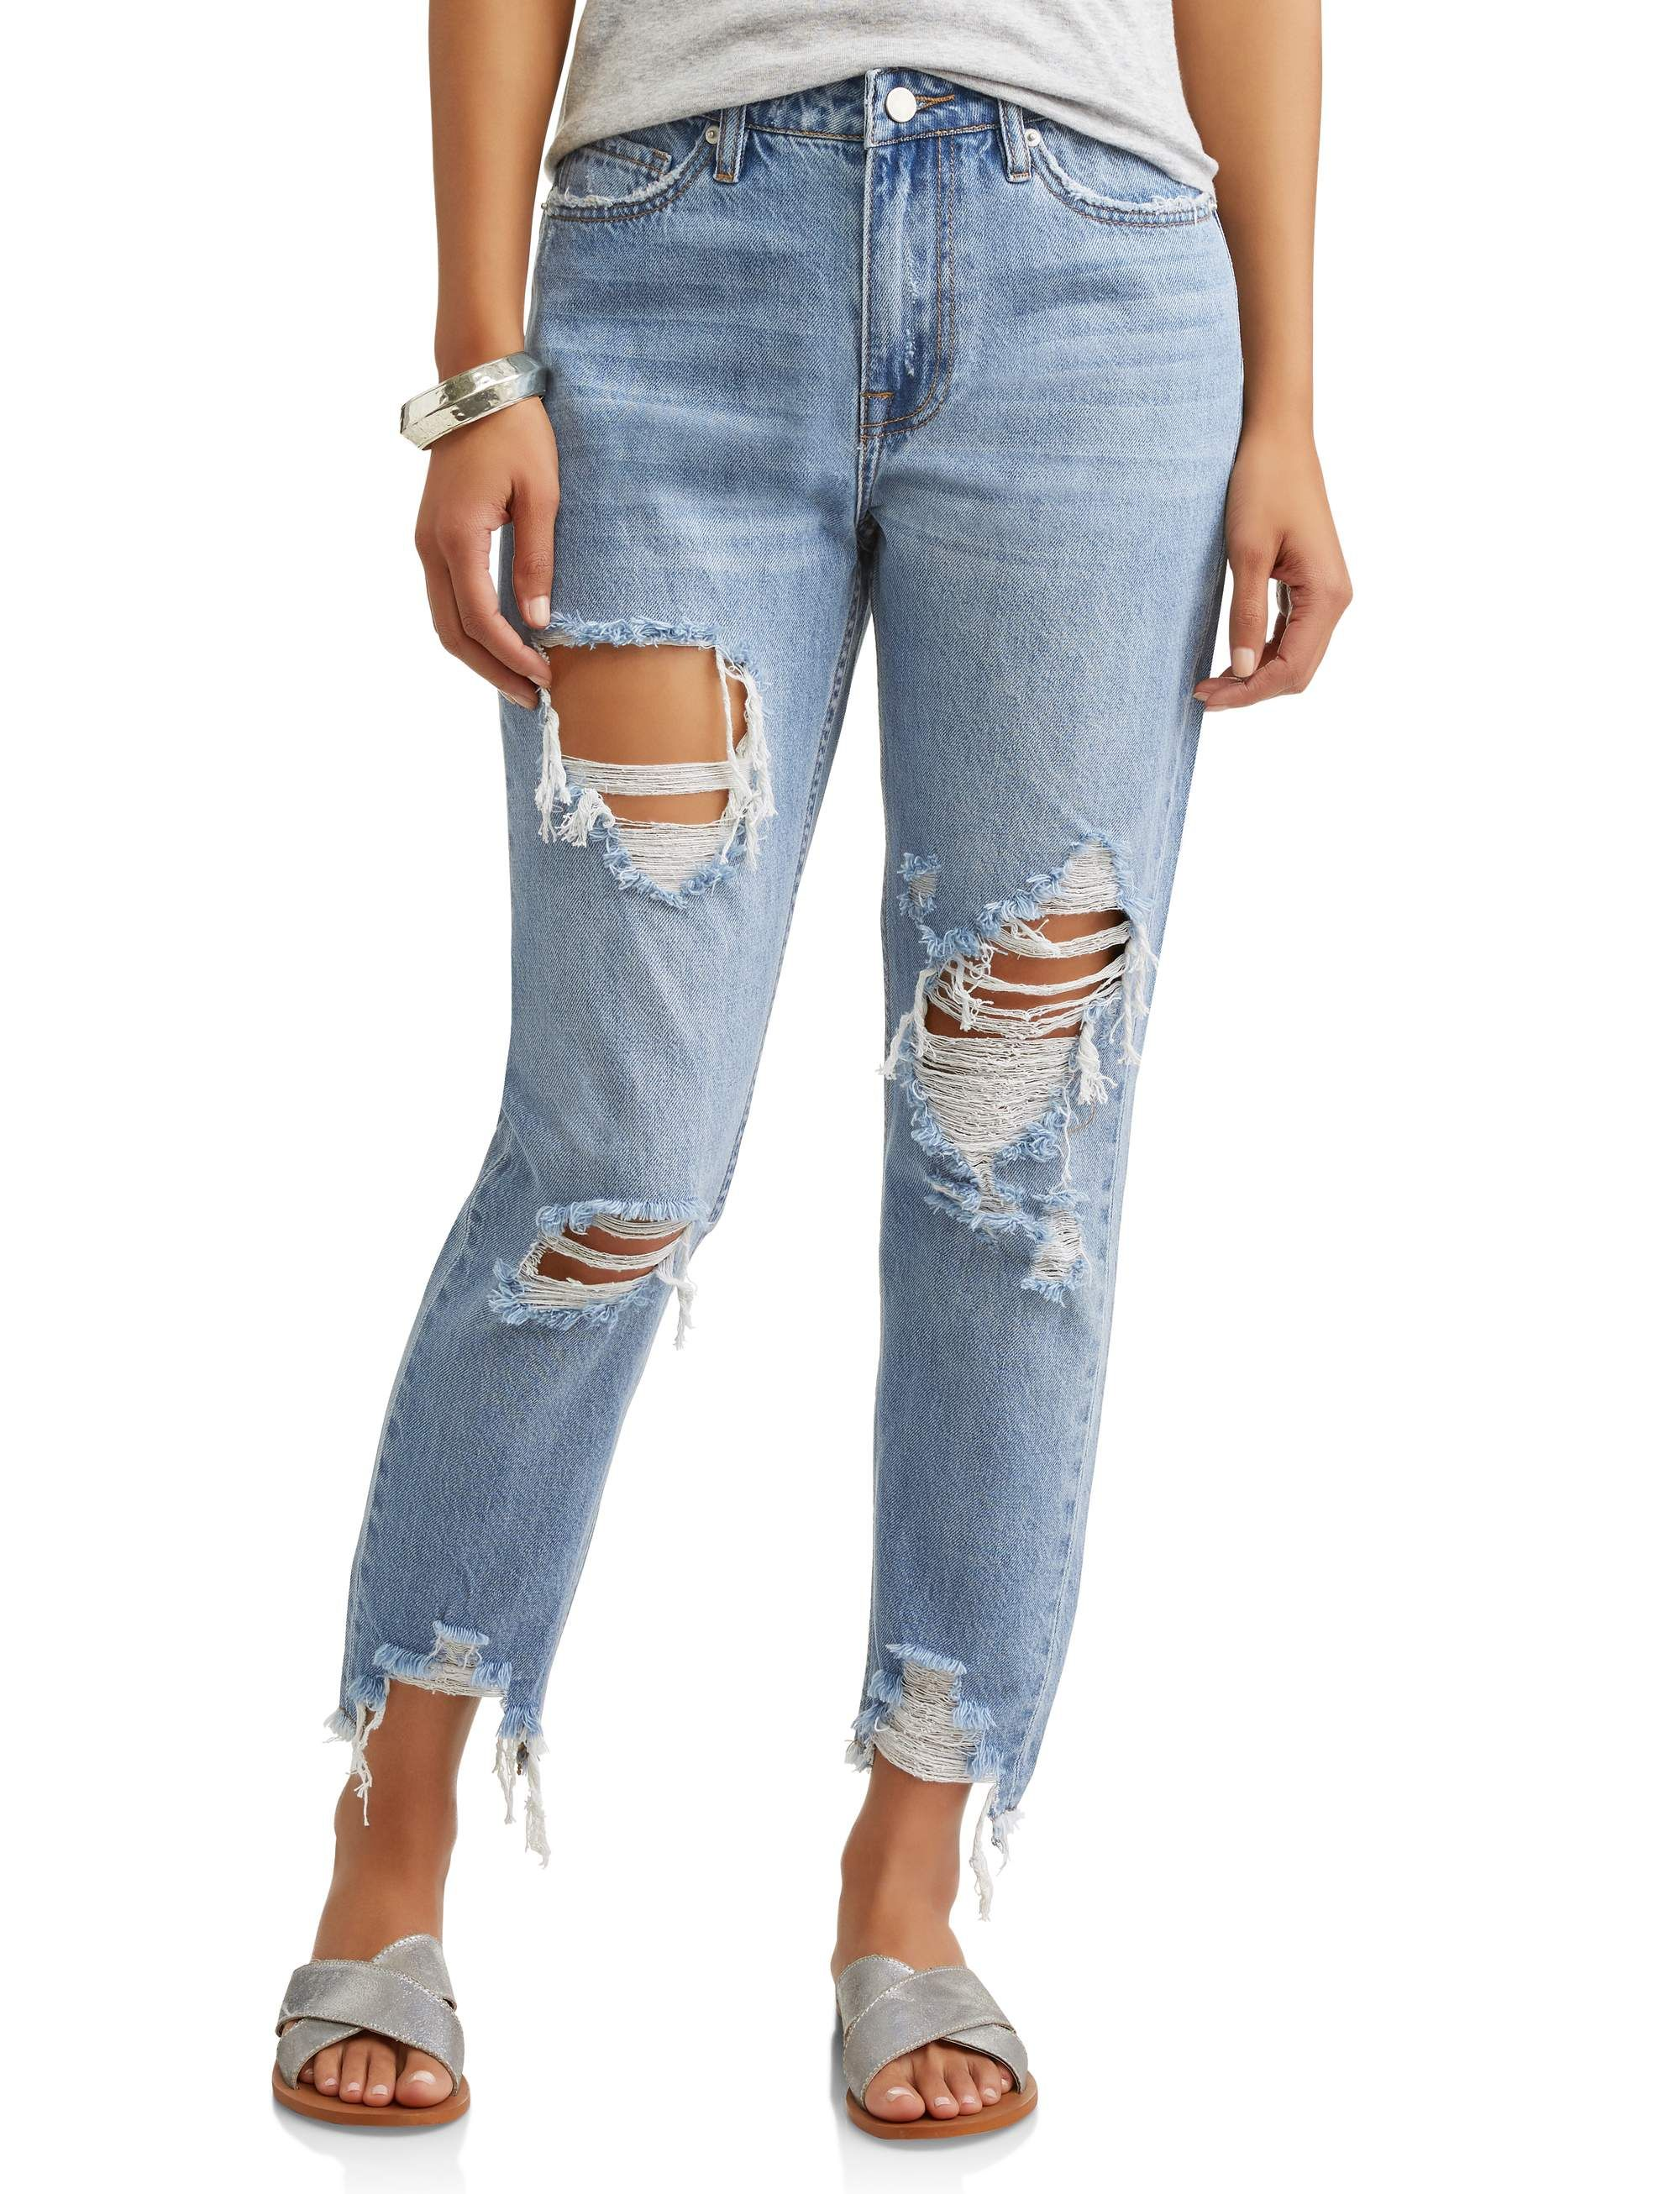 2020 New Women Jeans Petite Summer Trousers Classy Casual Summer Outfits Ready Made Pakistani Clothes Uk High Waisted Cargo Pants